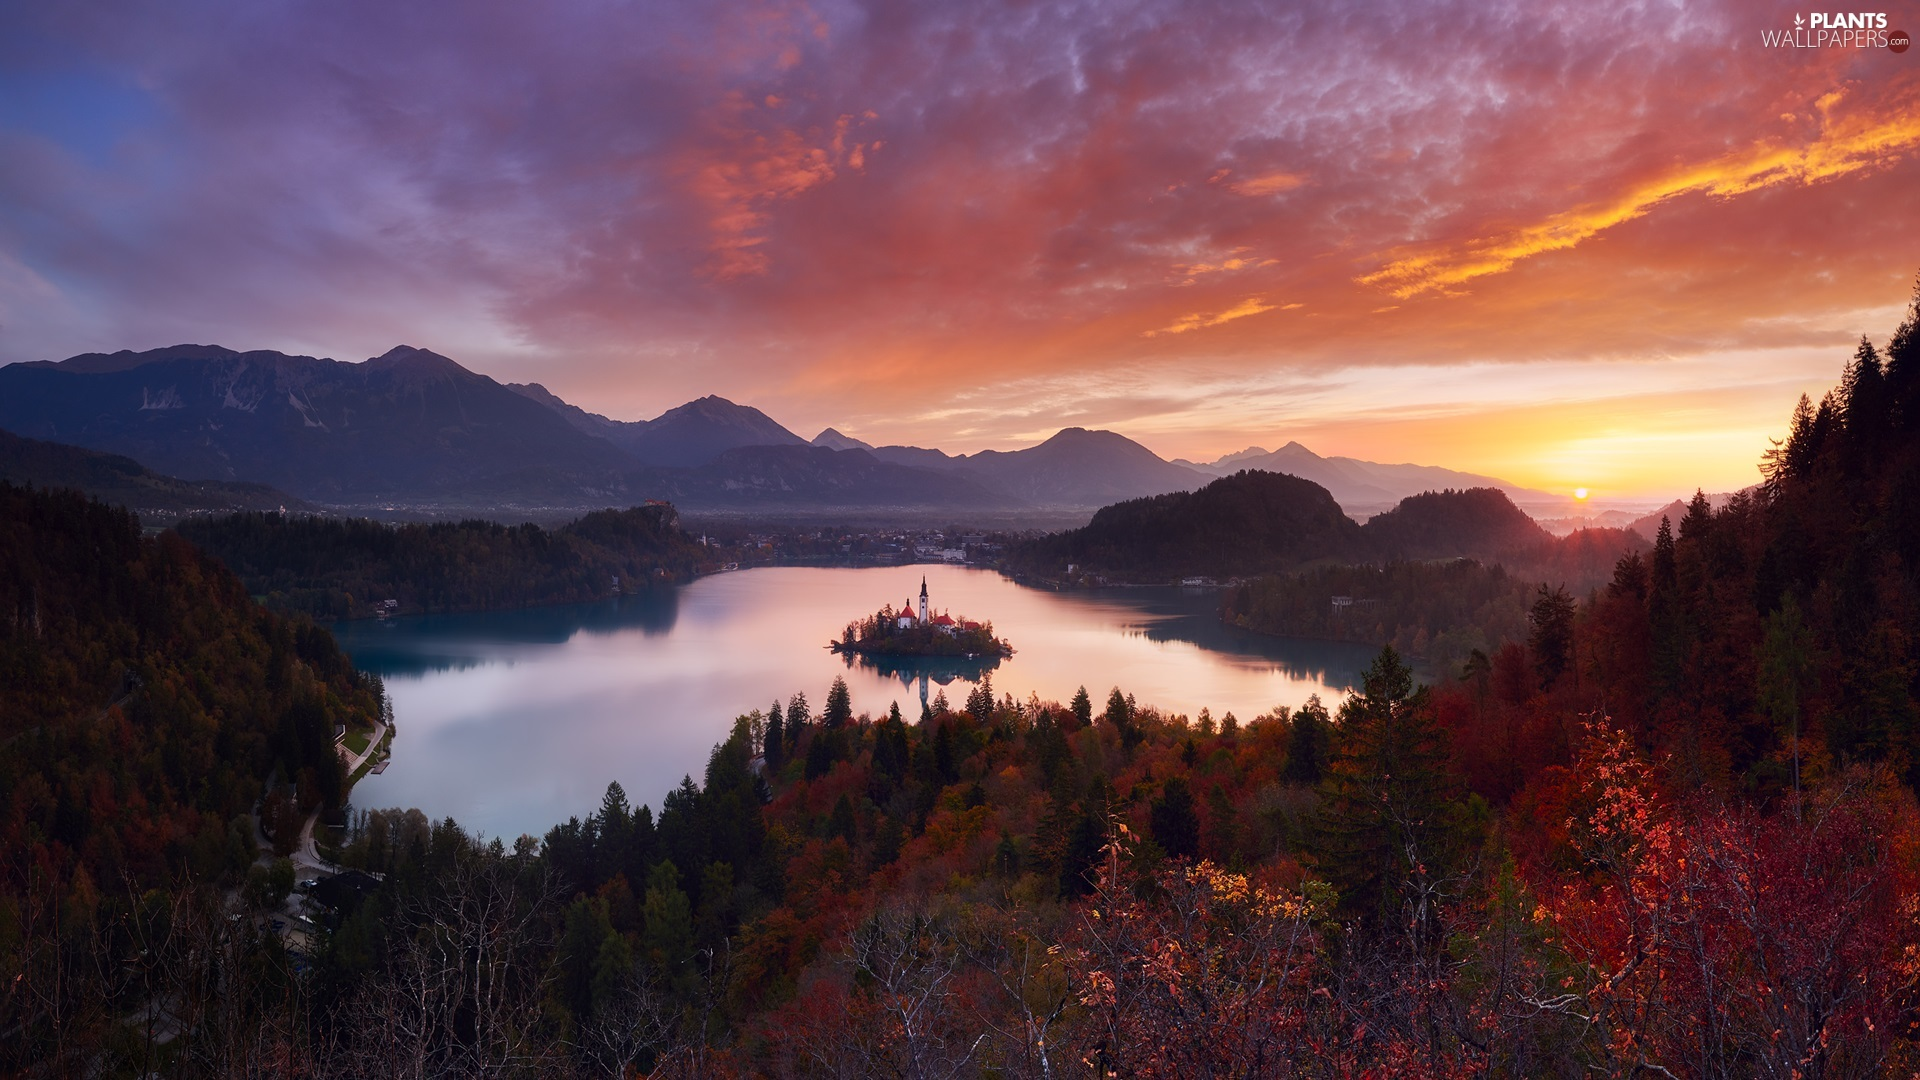 Lake Bled, Blejski Otok Island, Church of the Assumption of the Virgin Mary, Mountains, Great Sunsets, Slovenia, viewes, clouds, trees